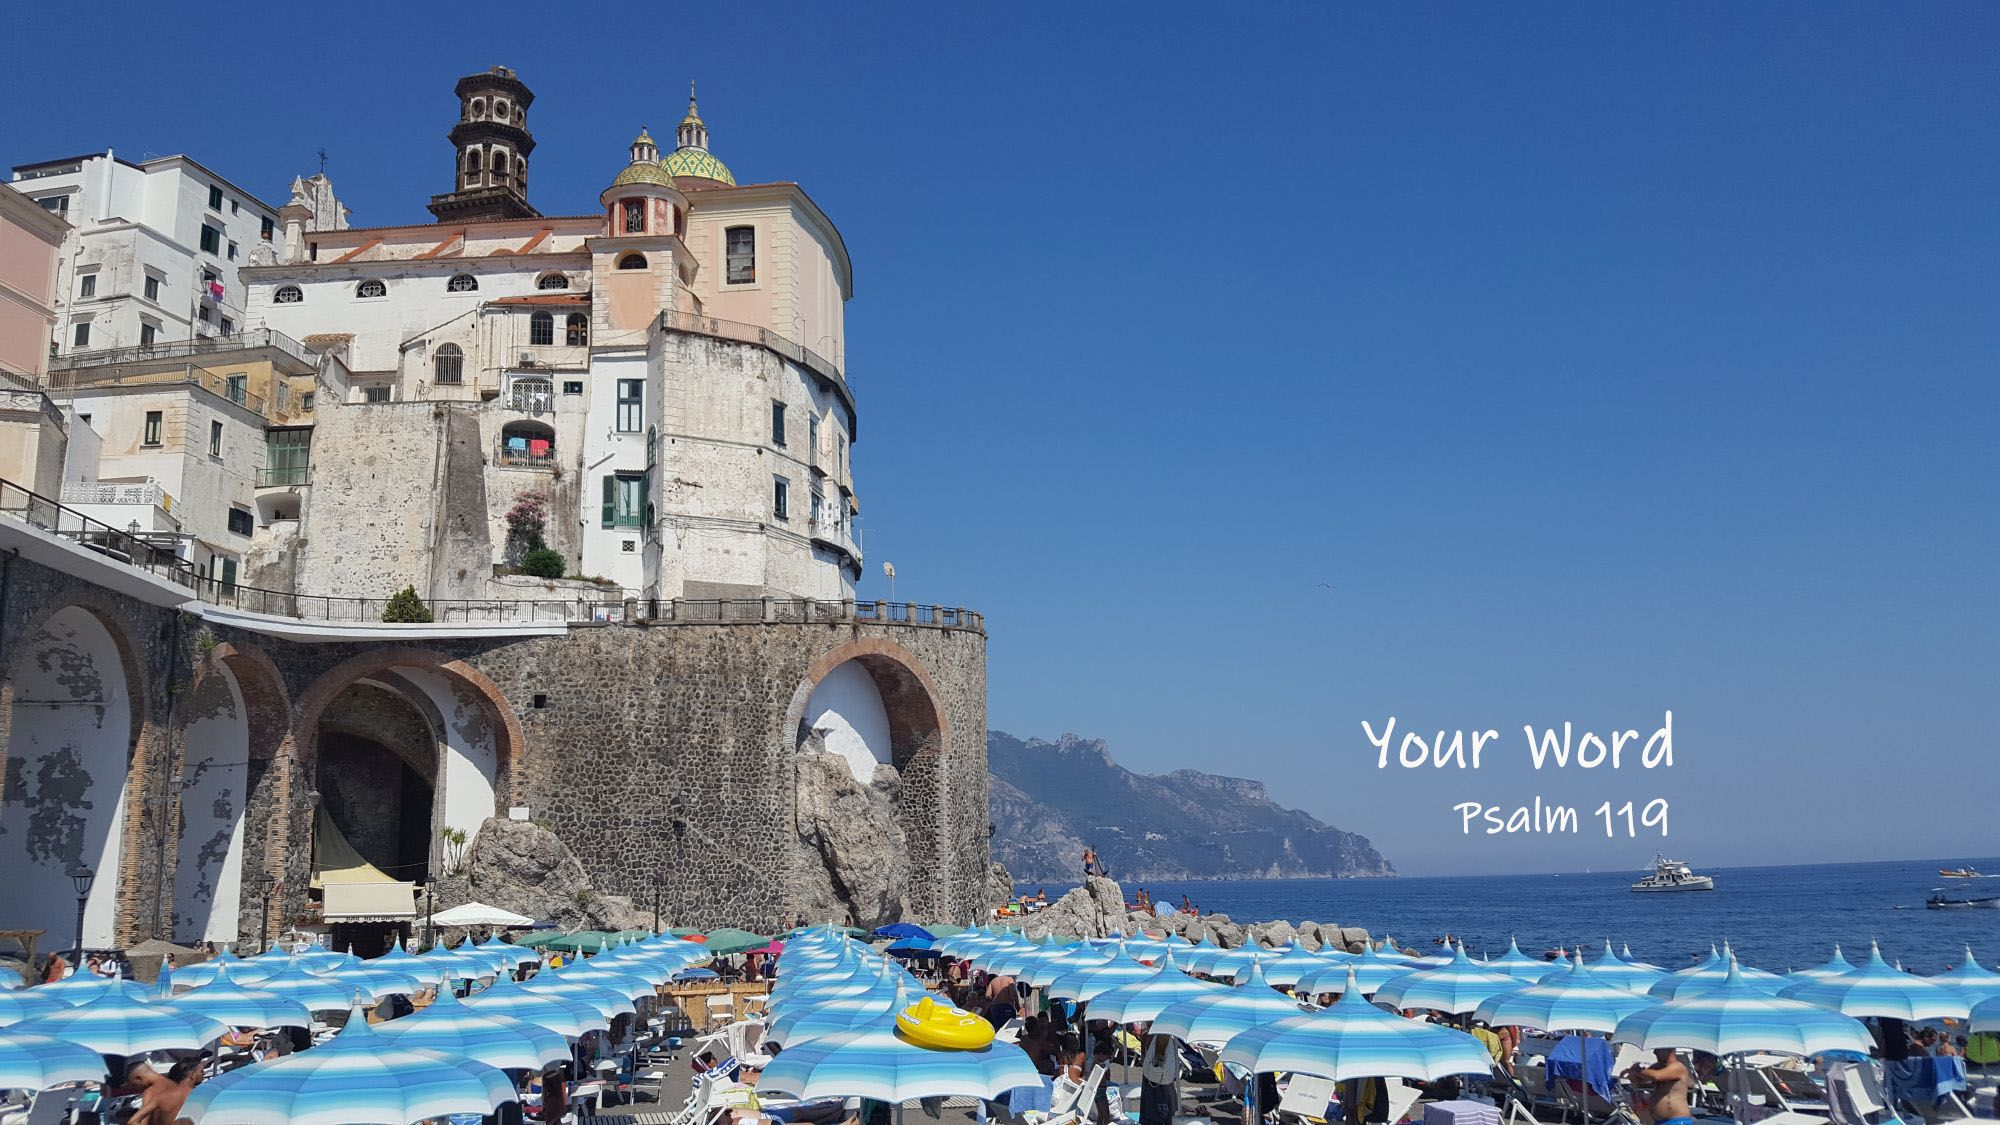 Your Word - Psalm 119 - Amalfi Coast